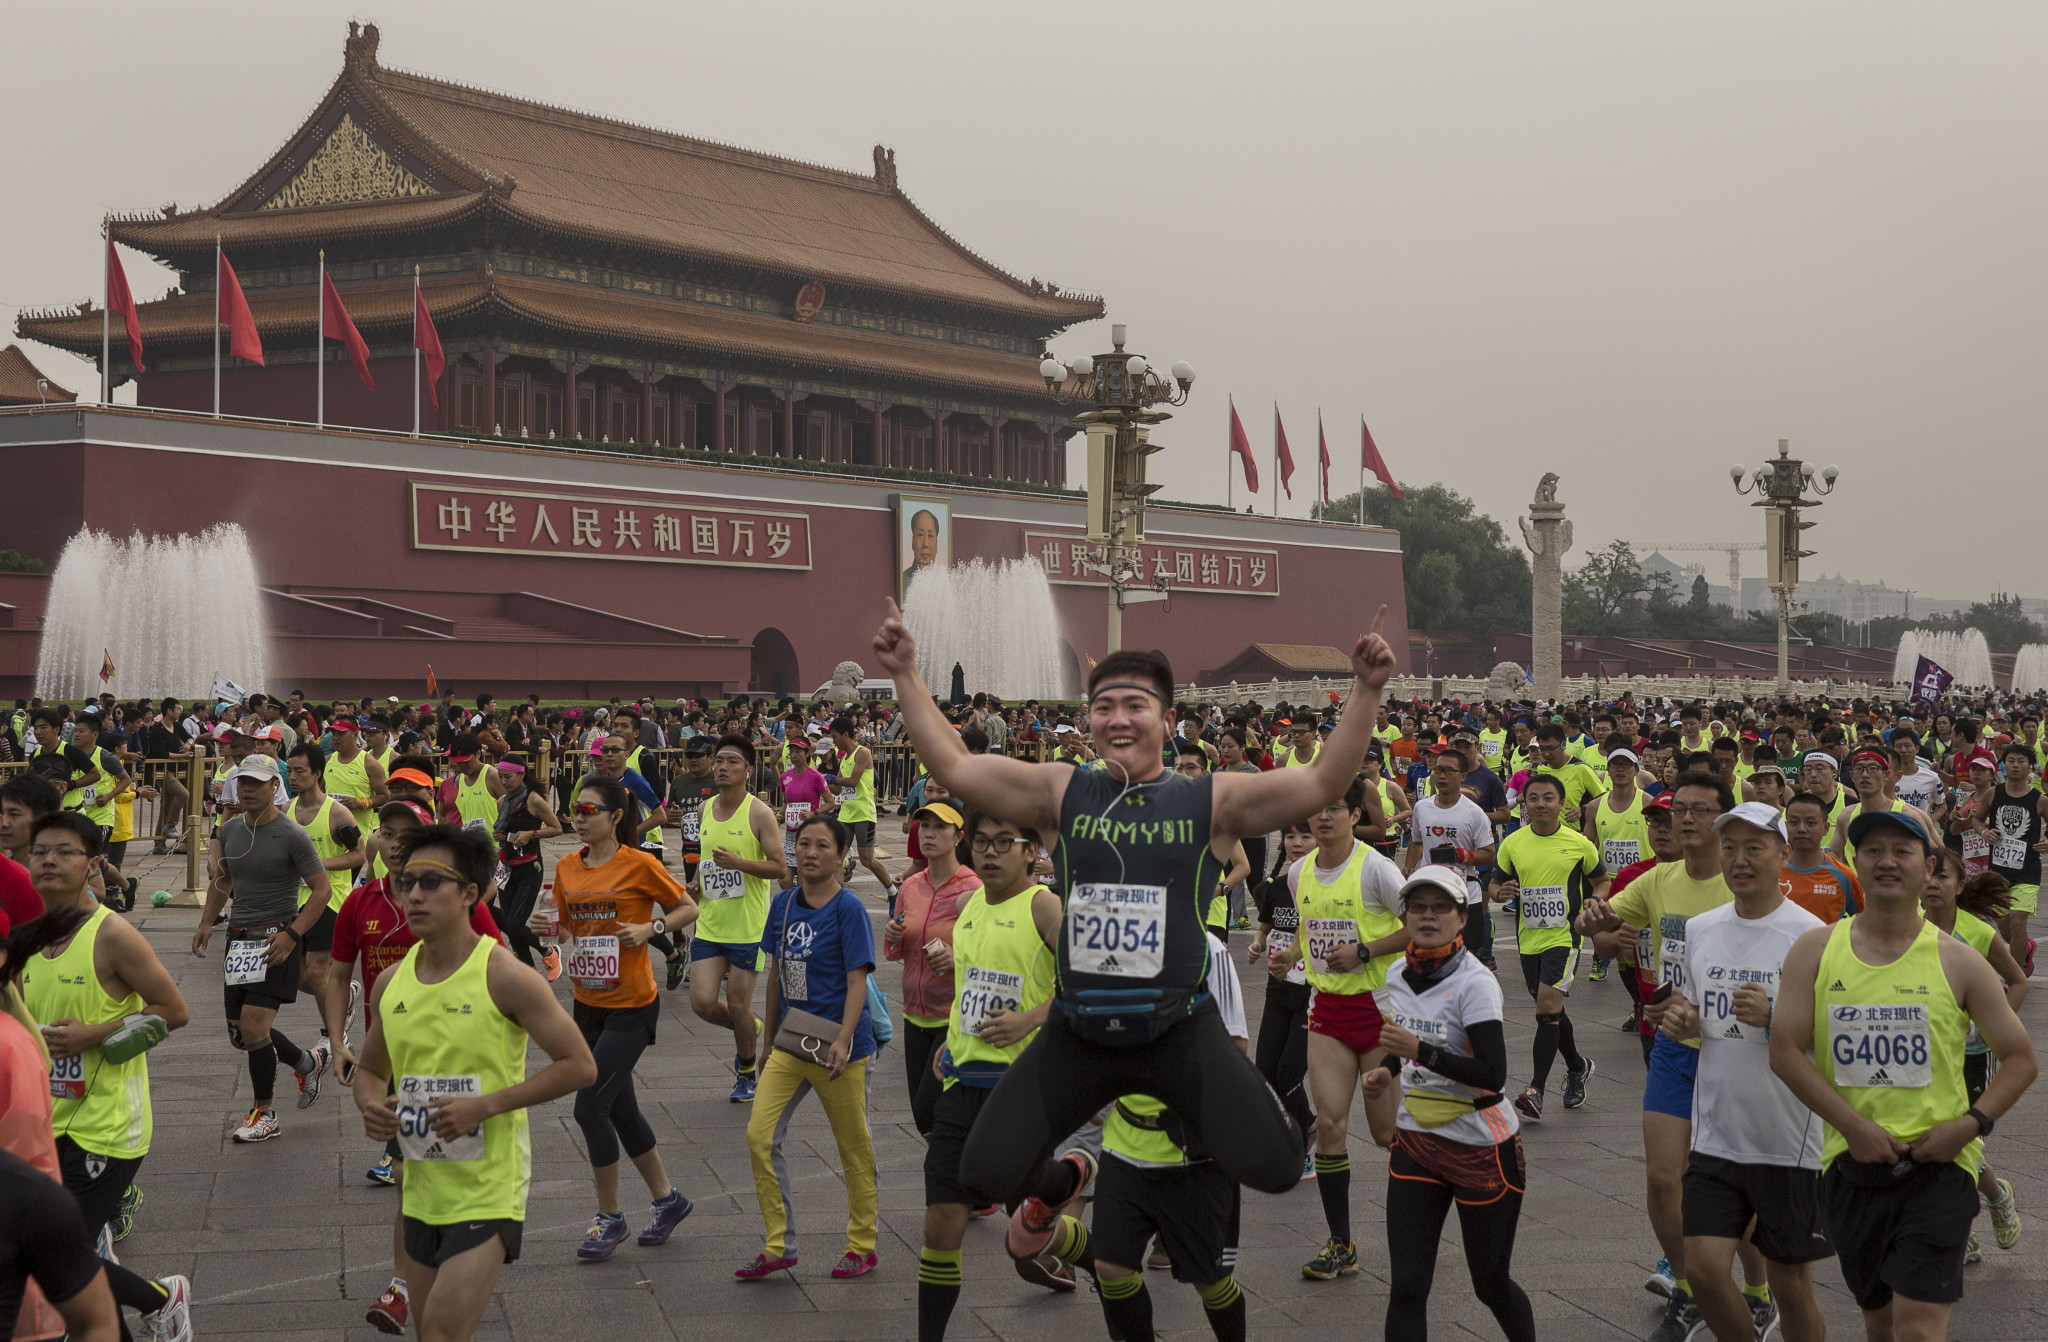 Beijing Marathon set to return on October 31 with 30,000 runners under strict COVID-19 protocols